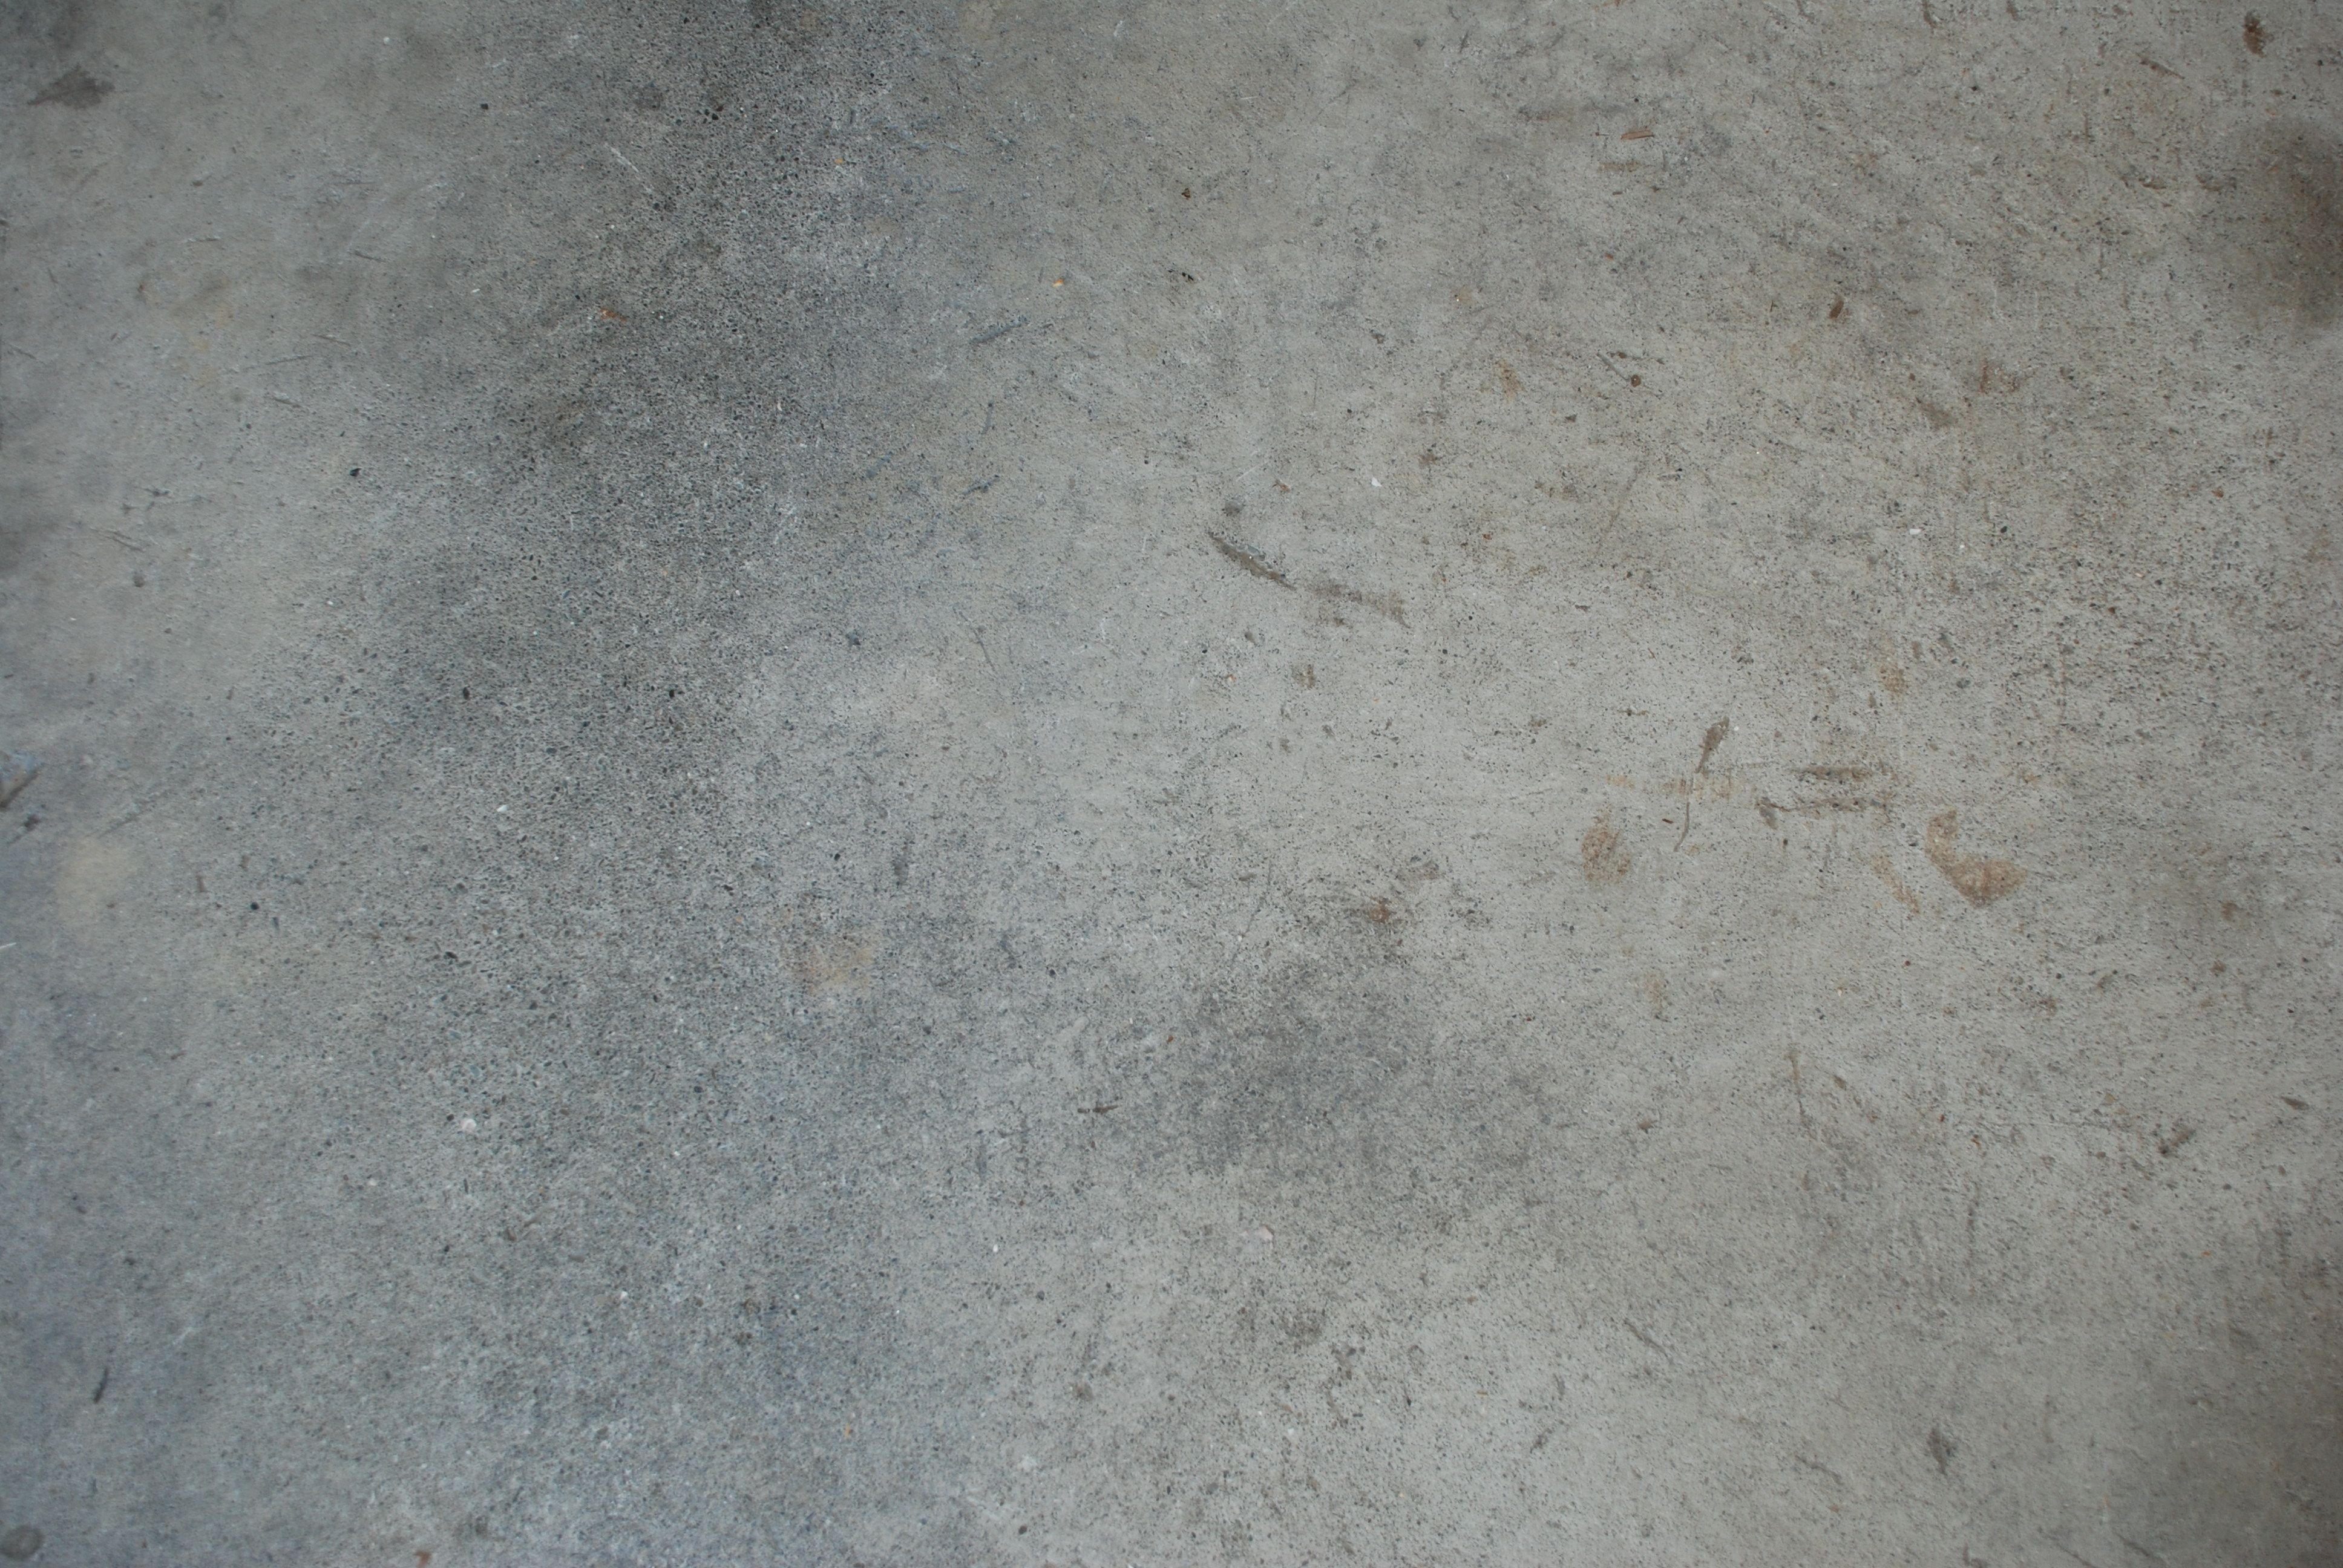 10 Free Concrete Textures Cracked And Grunge Textures Sycha Web Design Development Concrete Floor Texture Flooring Concrete Texture